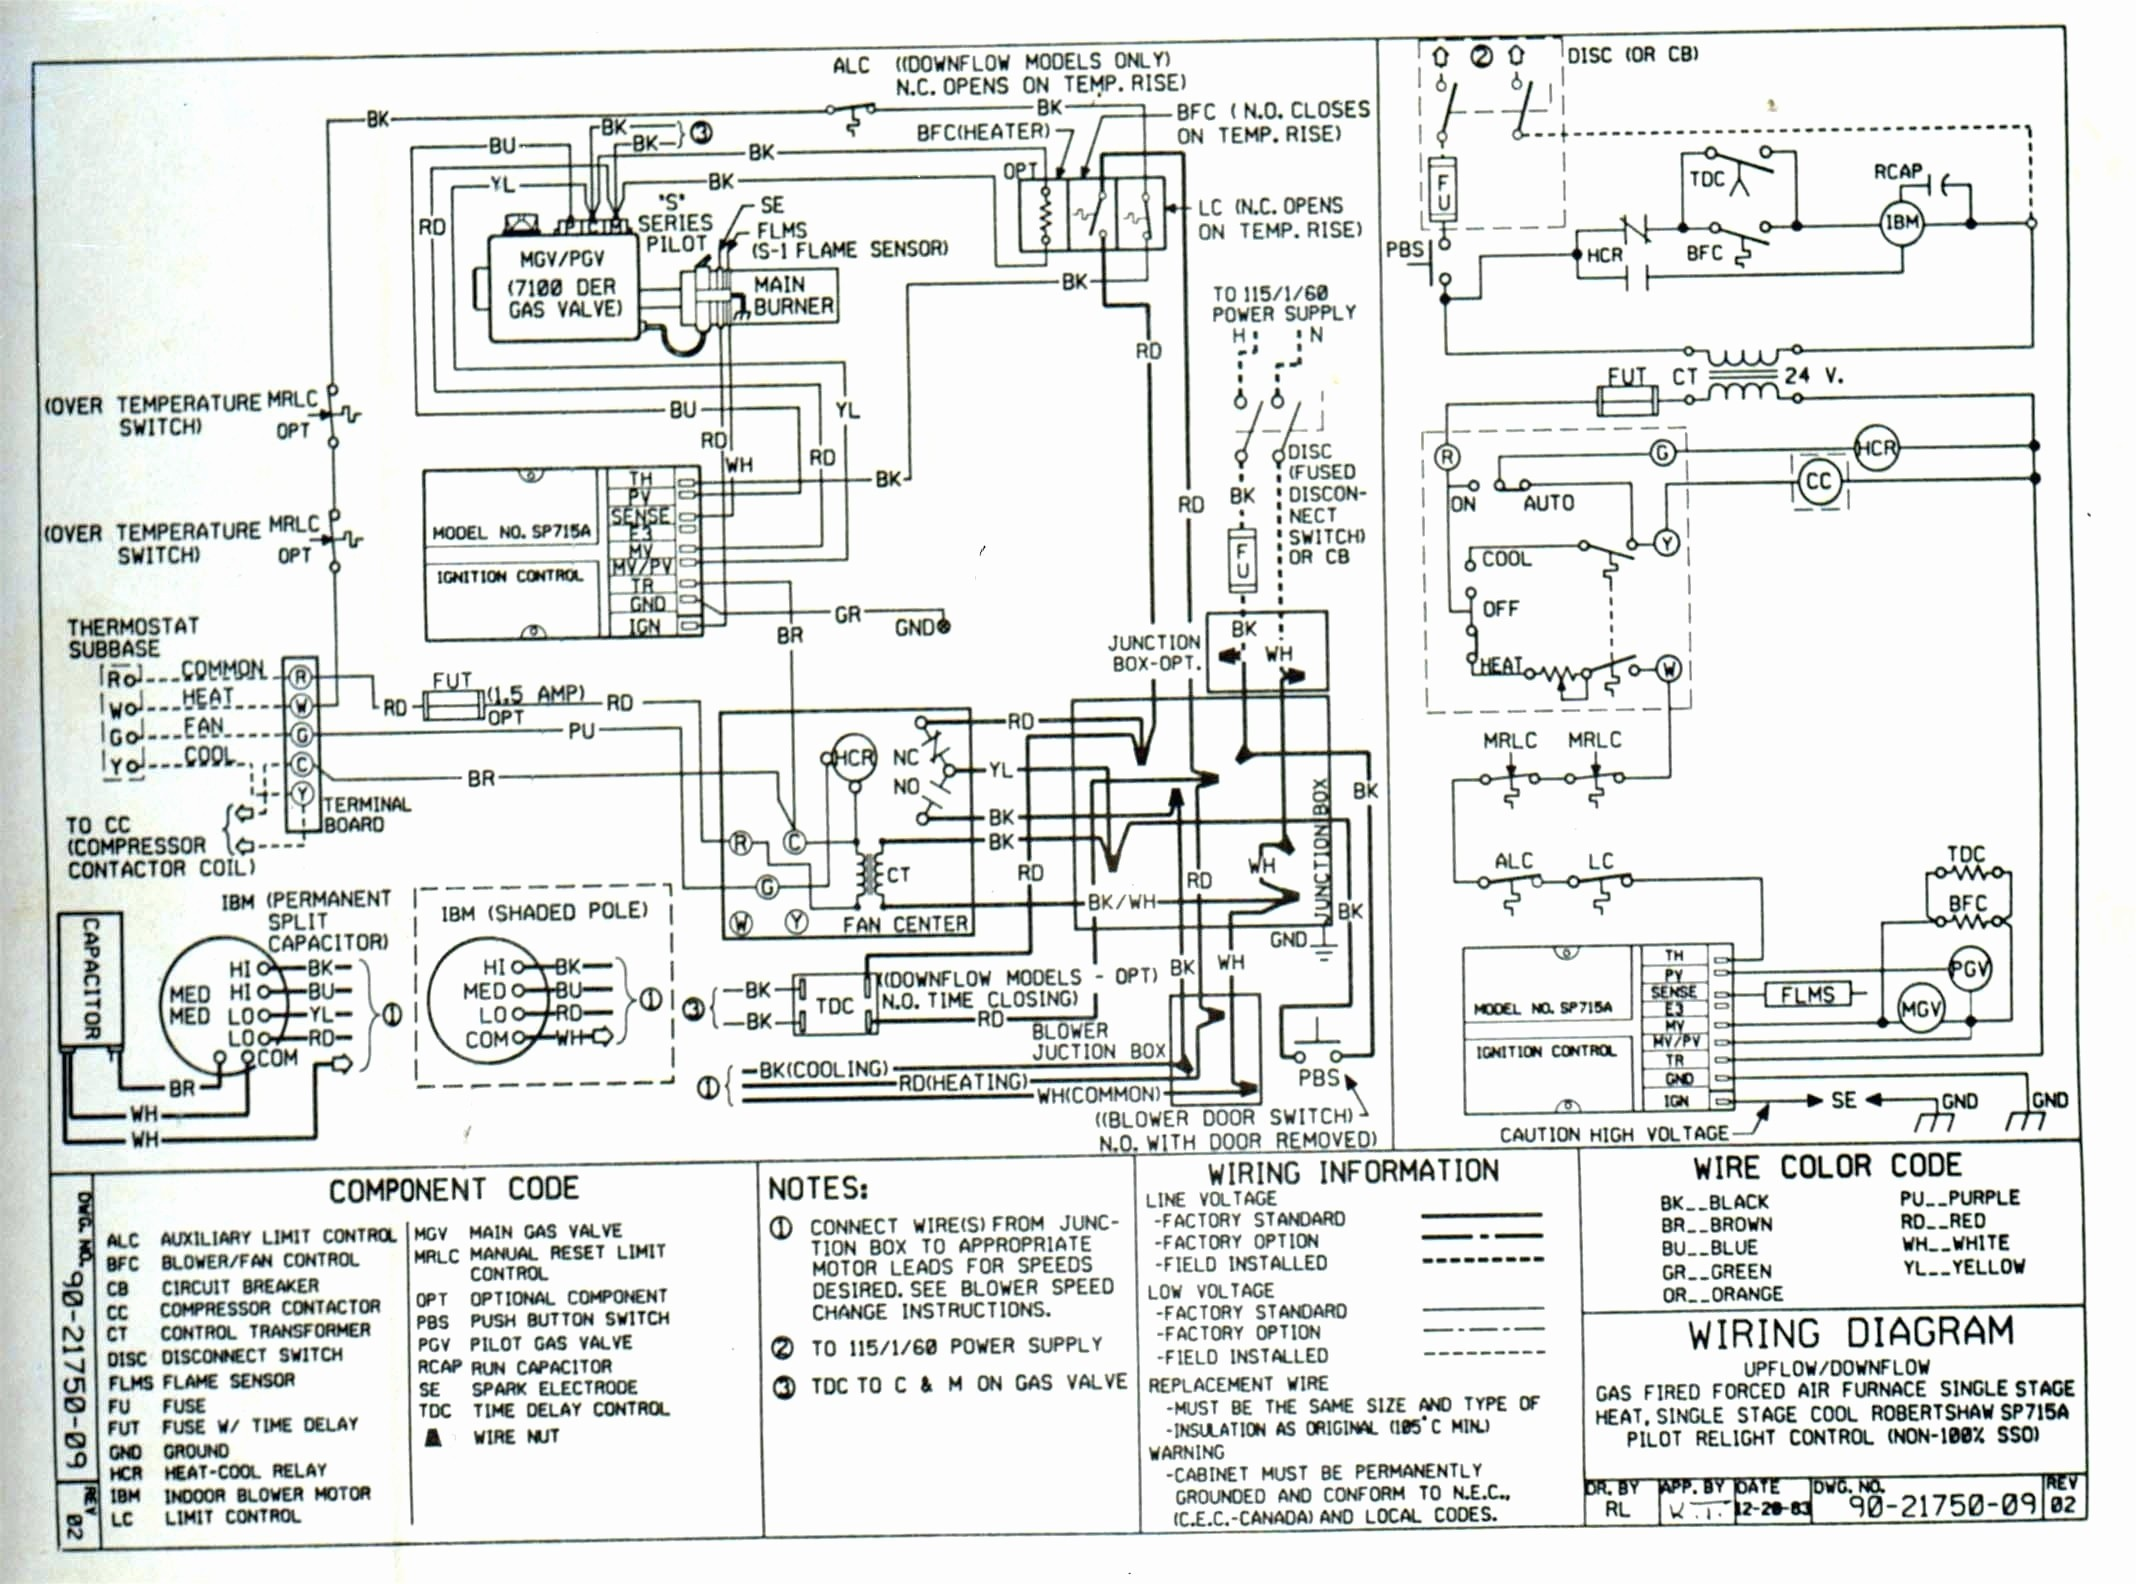 Amp Research Power Step Wiring Diagram C9b Robbins Amp Myers Electric Motor Wiring Diagram Of Amp Research Power Step Wiring Diagram Hoveround Wiring Diagram